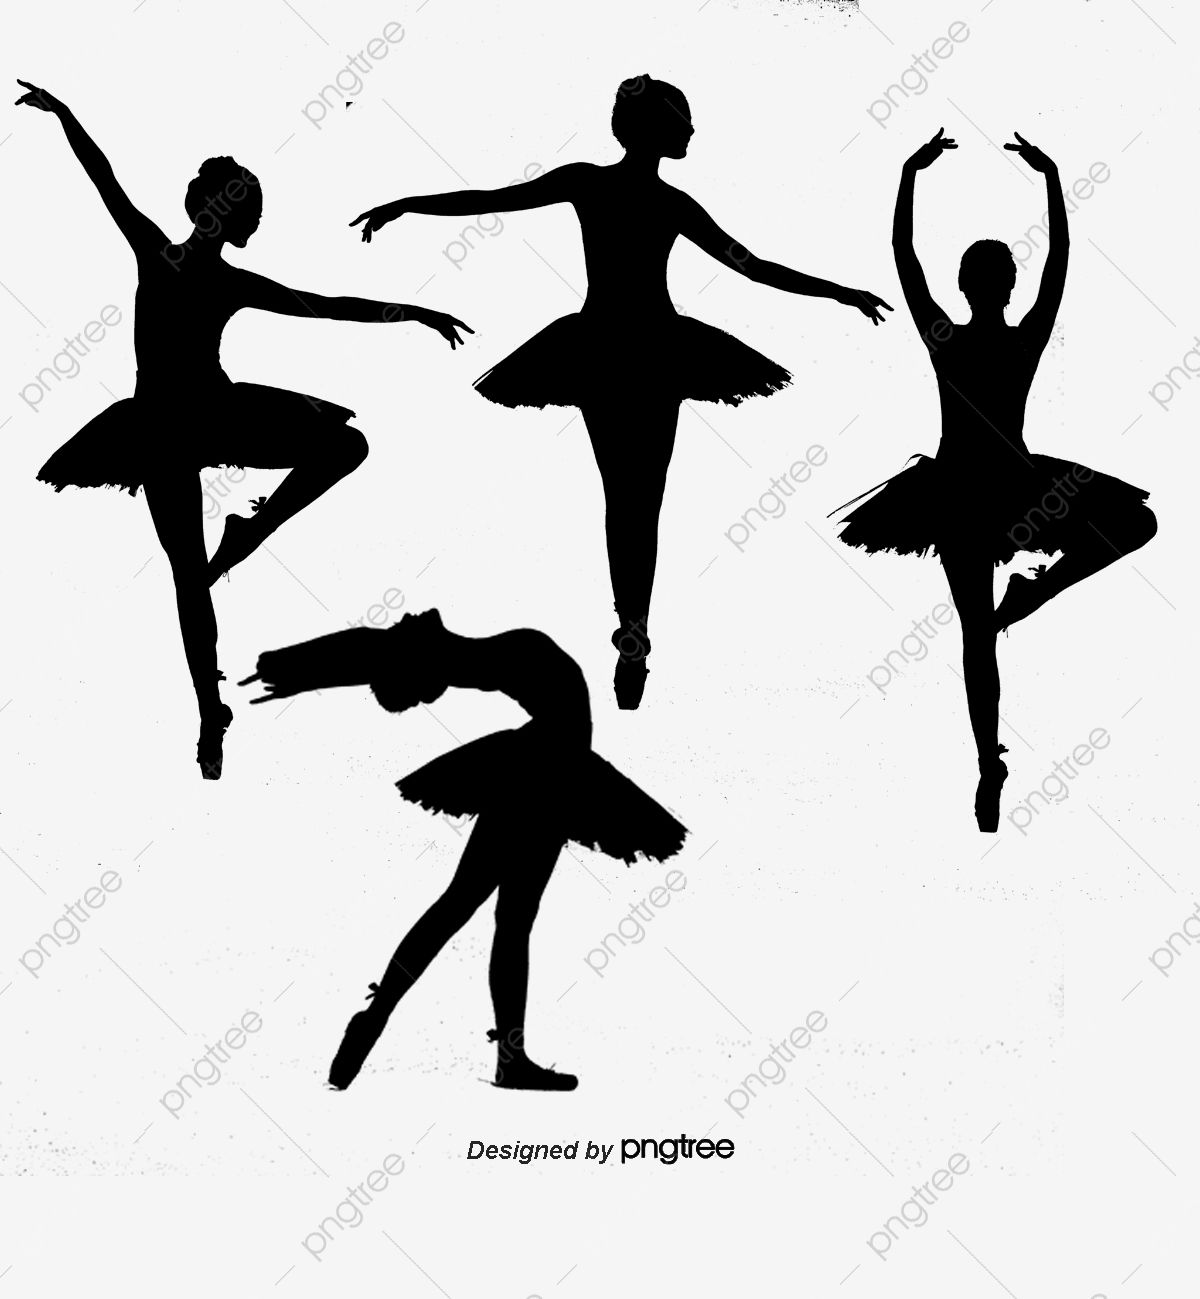 Dancers Silhouettes Vector Material 18 Models Hip Hop Dance Dancer Png Transparent Clipart Image And Psd File For Free Download Silhouette Vector Dancer Silhouette Silhouette Wall Art